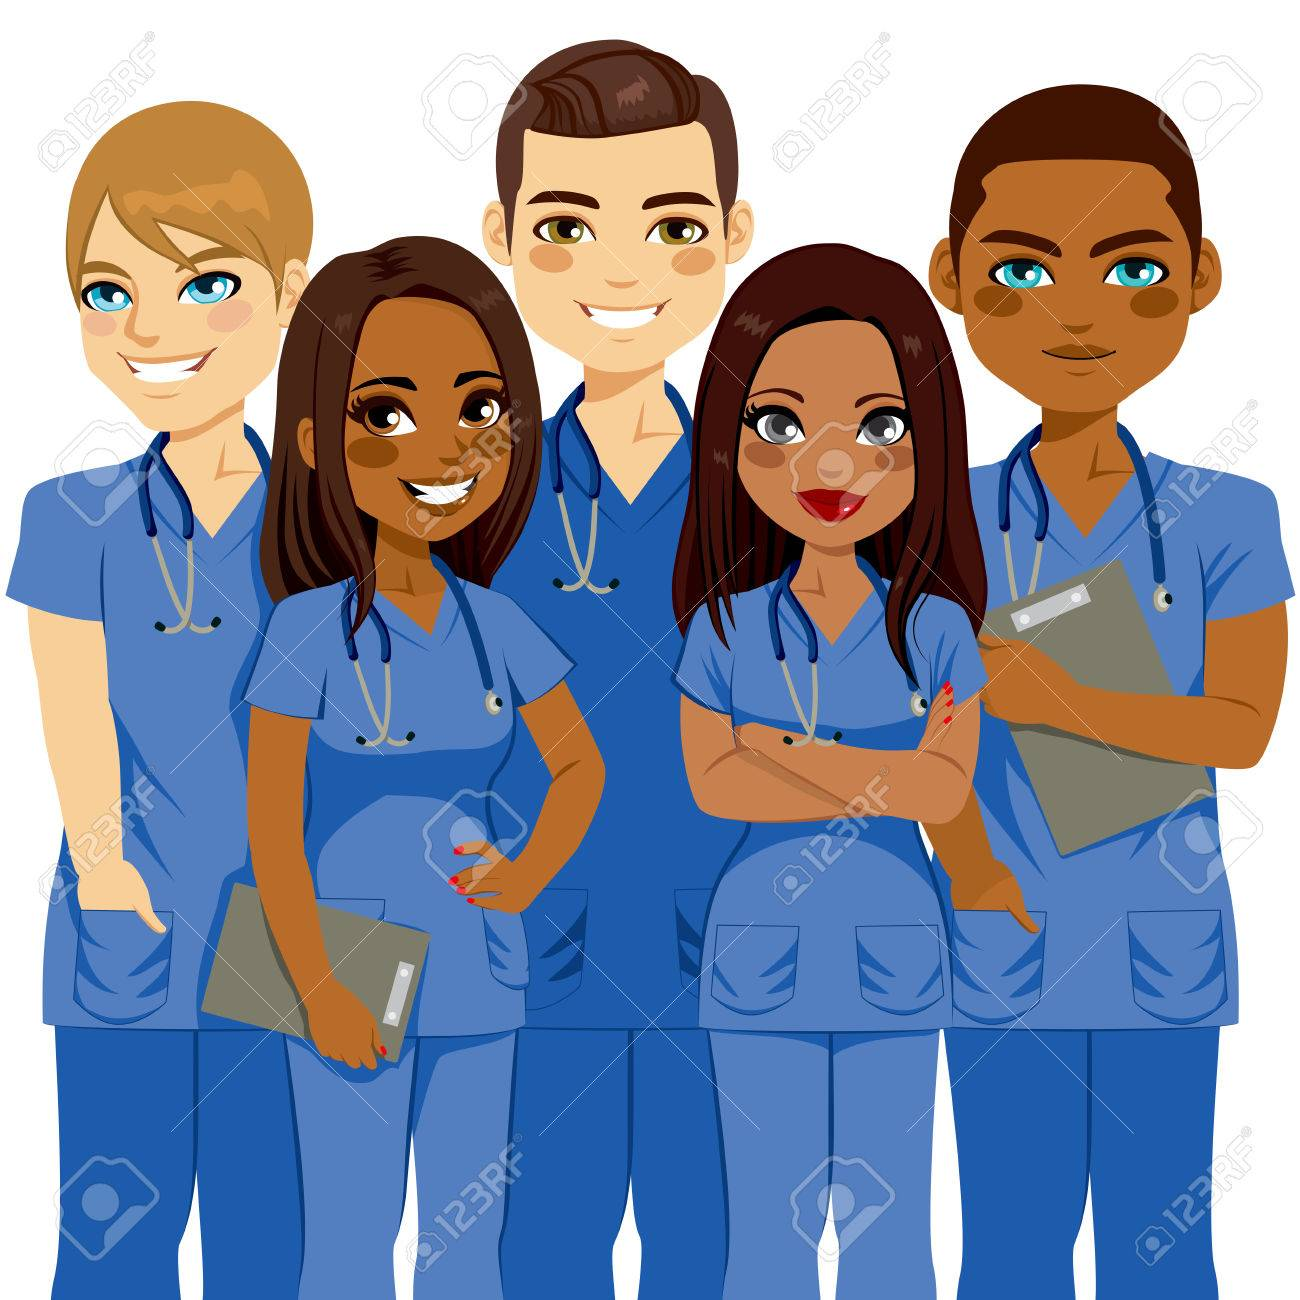 Young diversity male and female nurse team - 60323493